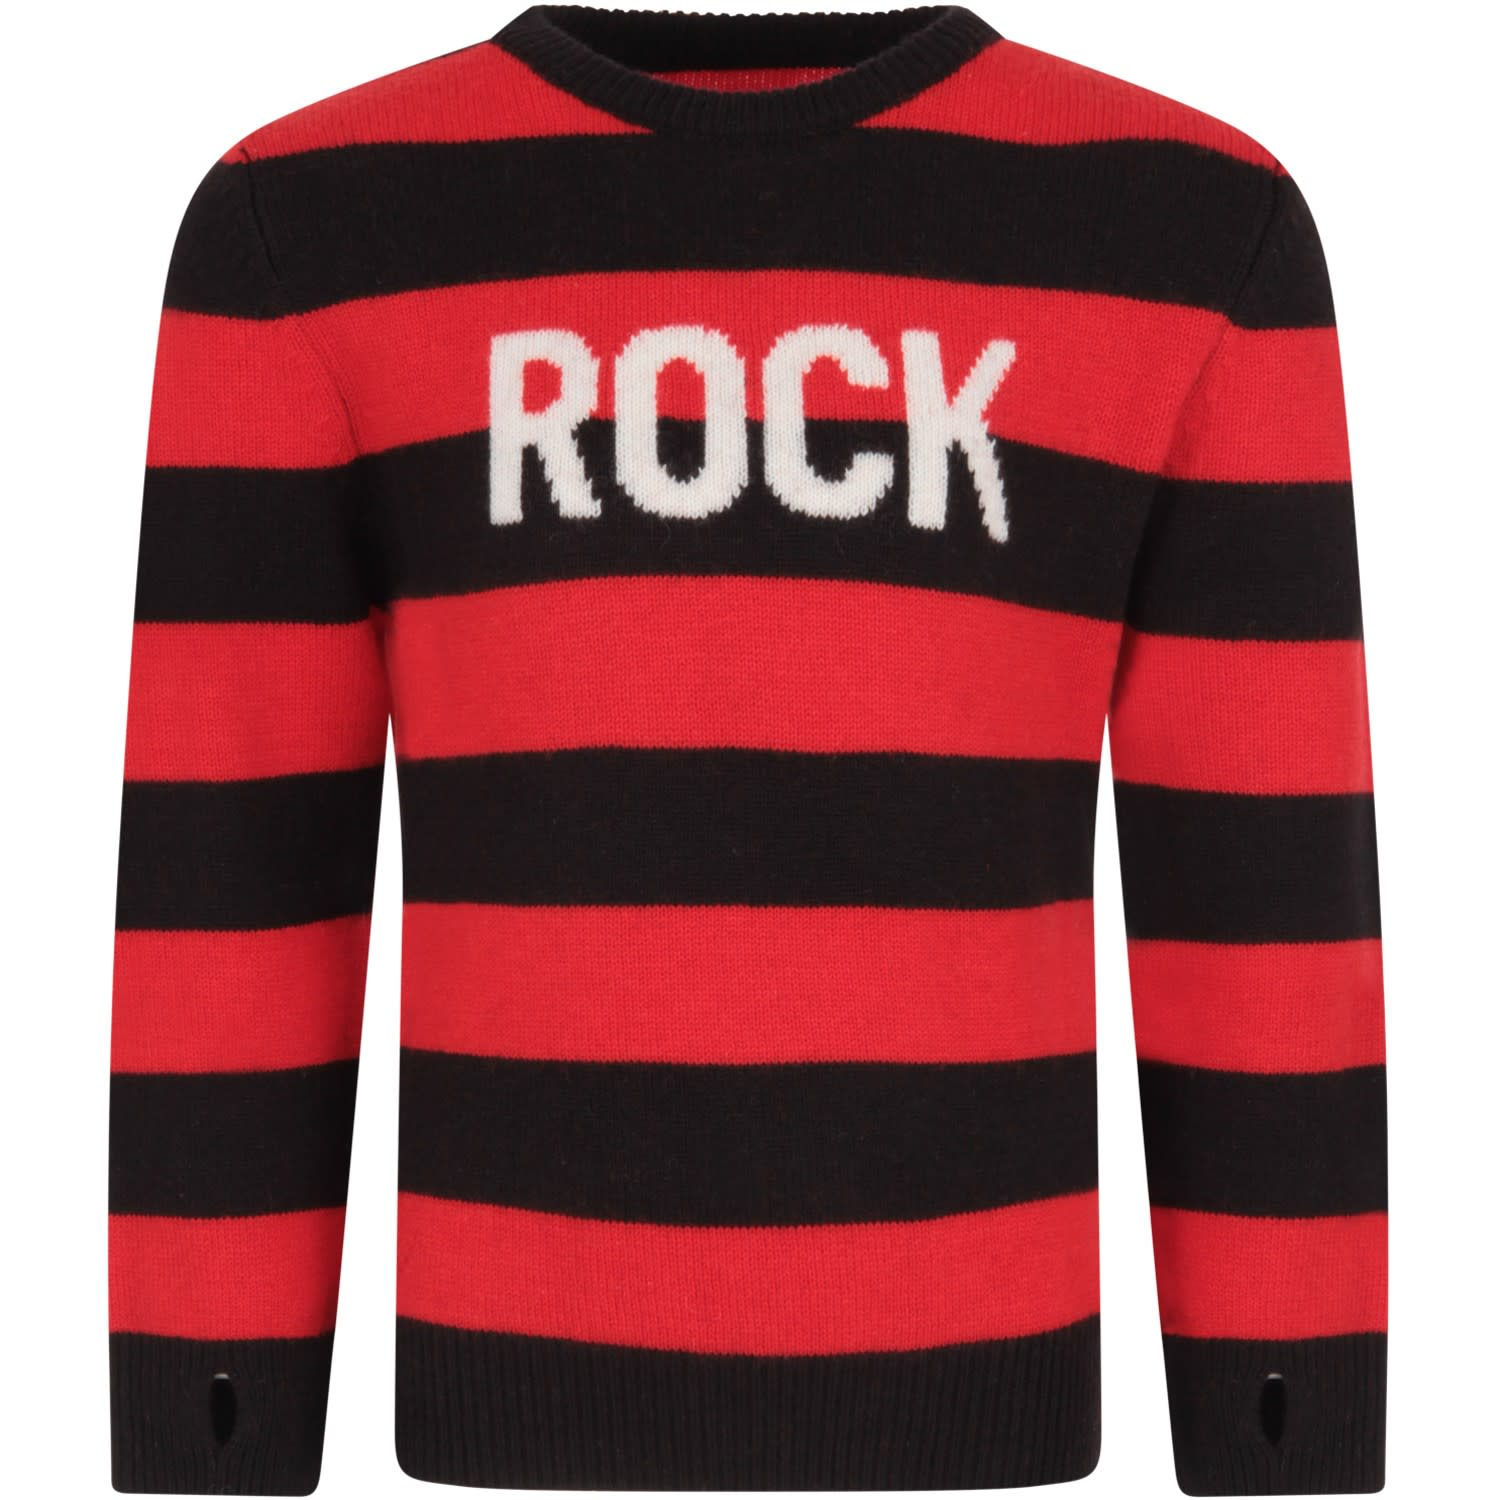 Zadig & Voltaire RED AND BLACK BOY SWEATER WITH WHITE WRITING